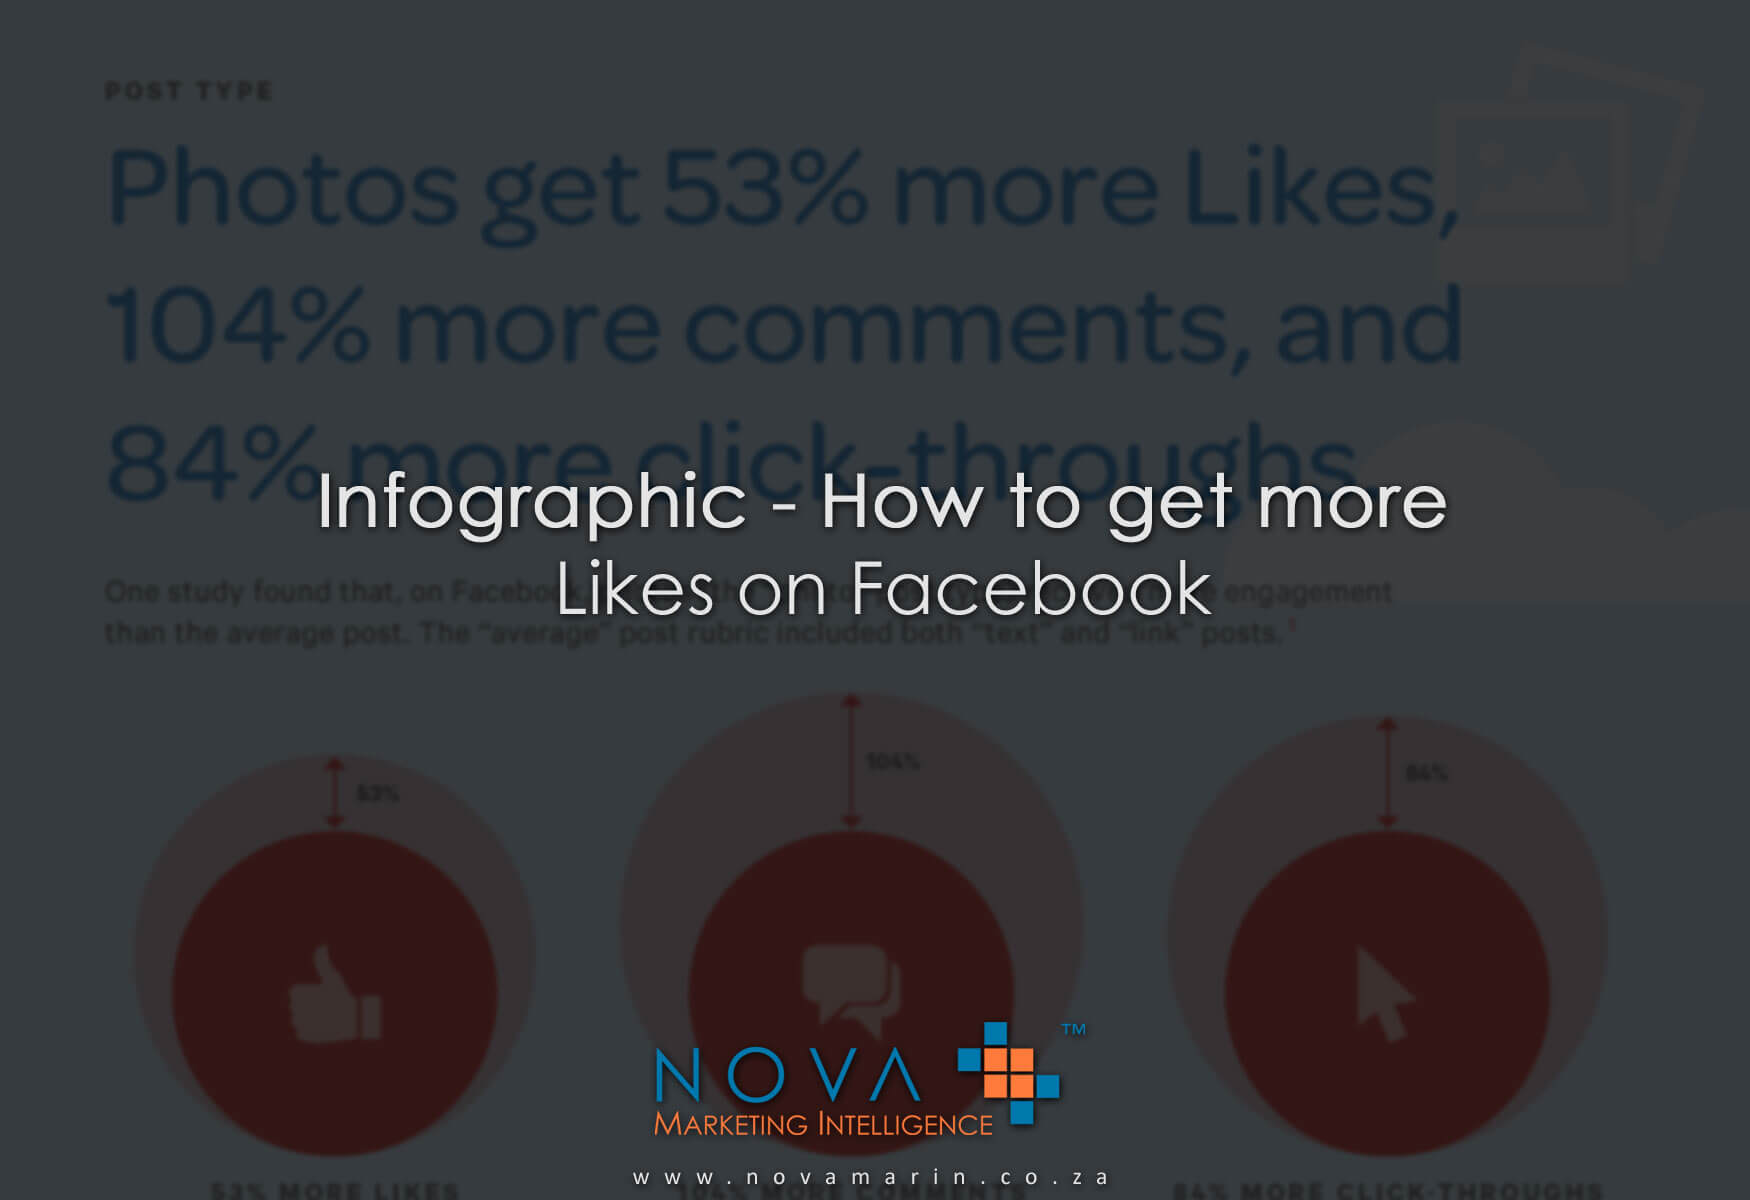 Infographic - How to get more Likes on Facebook